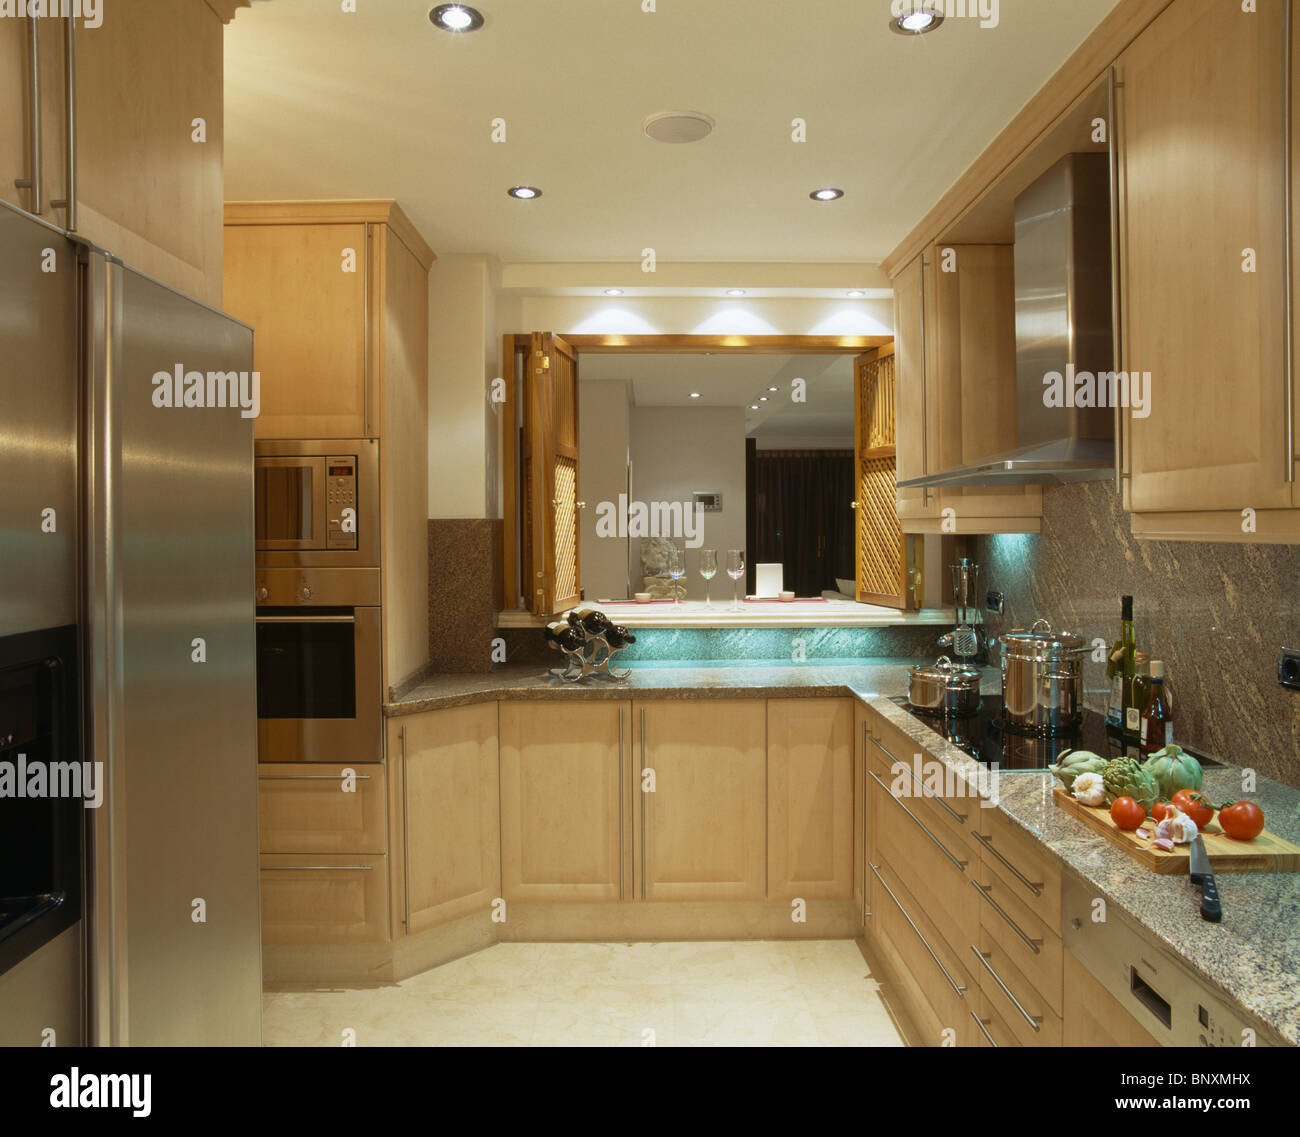 Recessed Lighting Kitchen Modern: Recessed Lighting In Spanish Kitchen Stock Photos